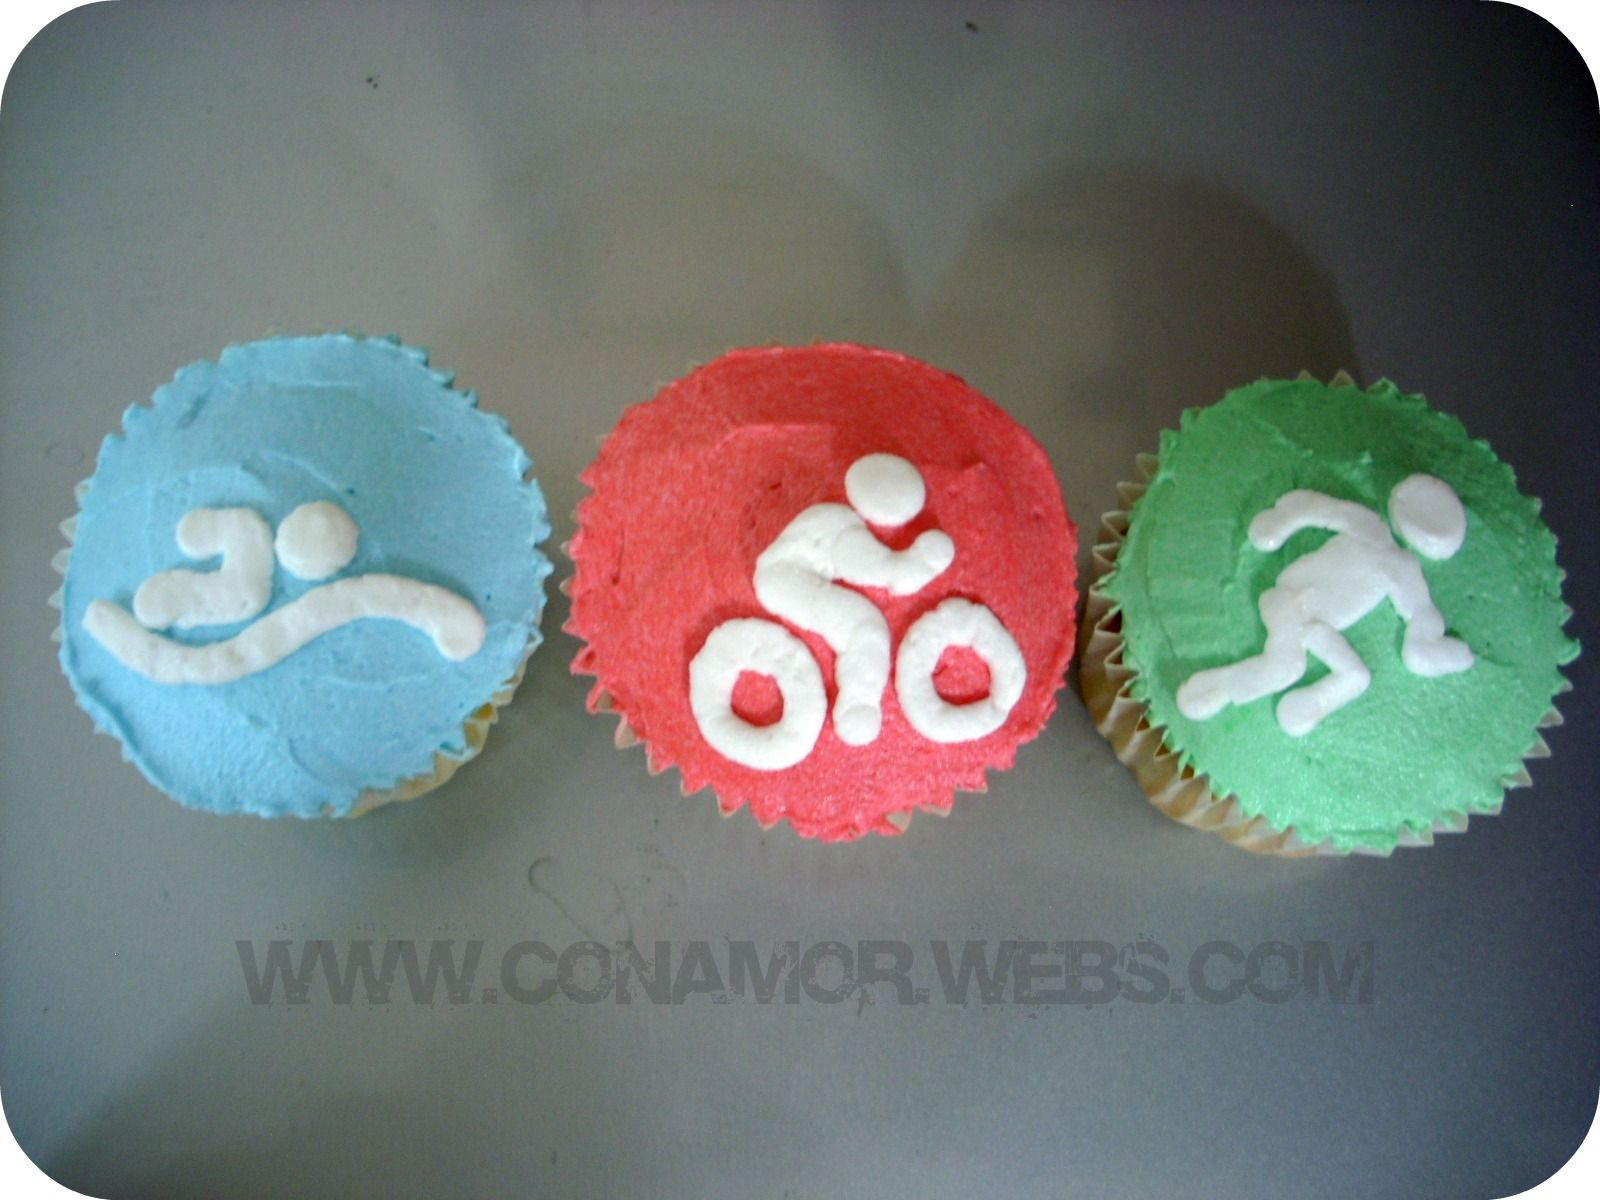 Triathlon Cupcakes For The Big 3 0 One Event Each Decade As Long I Get A Vacation To Go Along With It